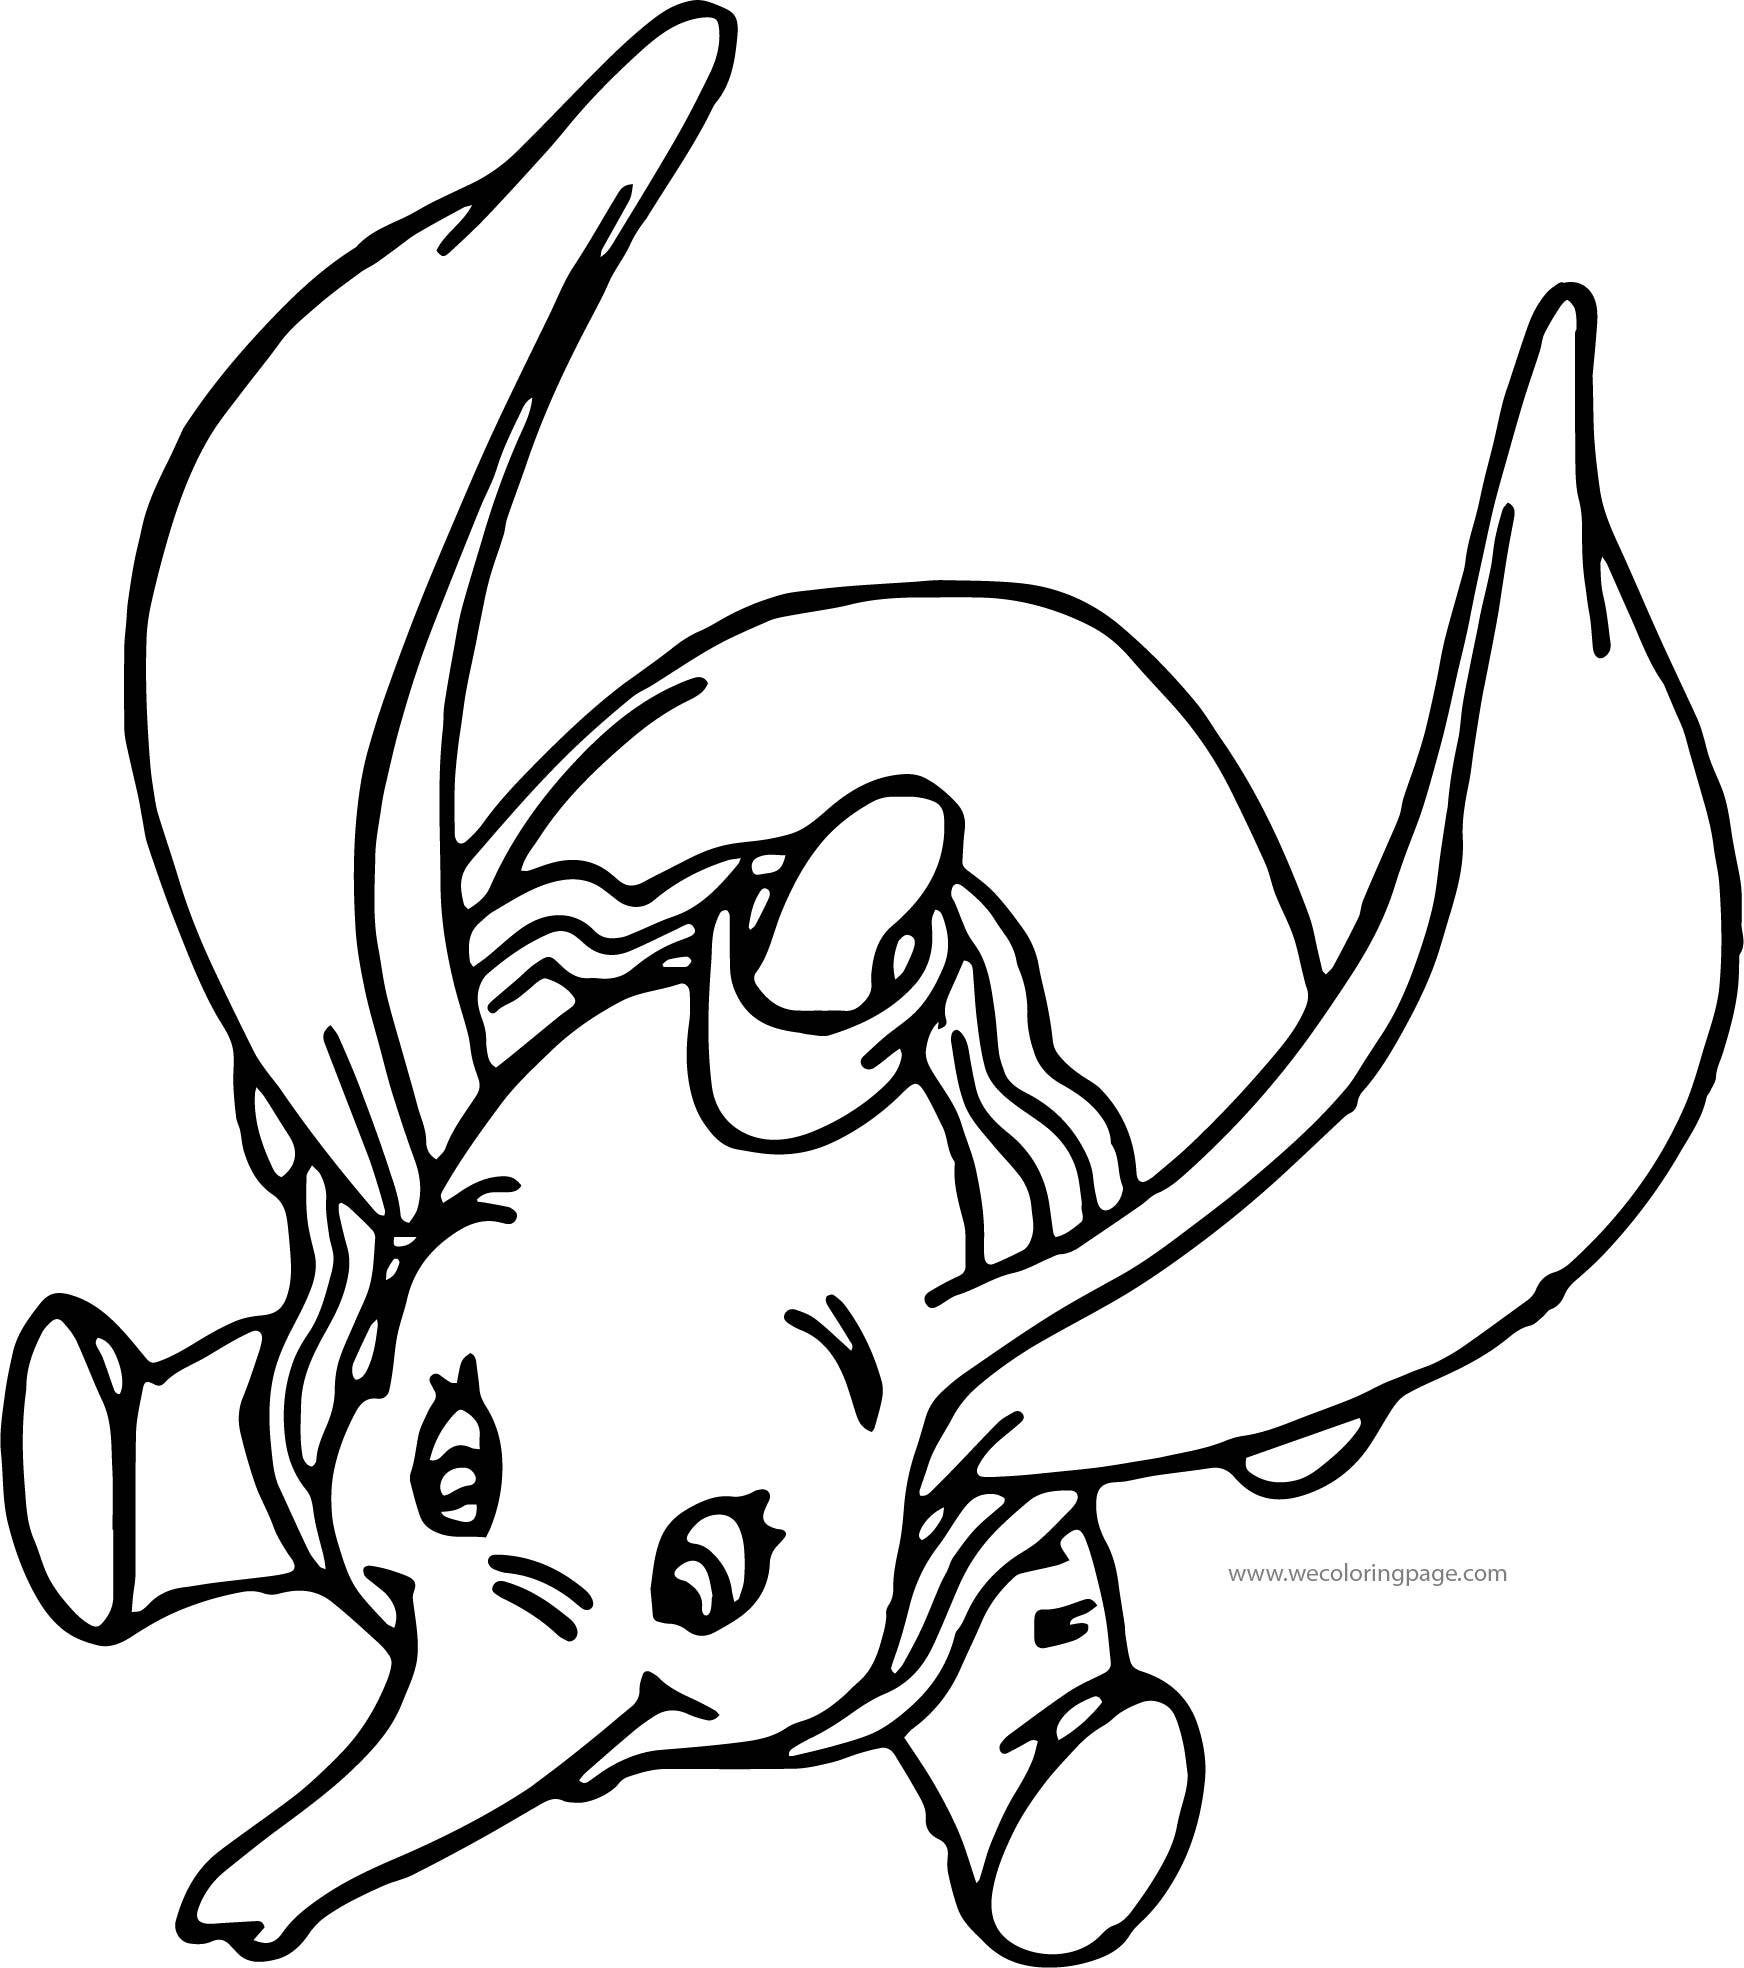 Dumbo Swoop Coloring Pages